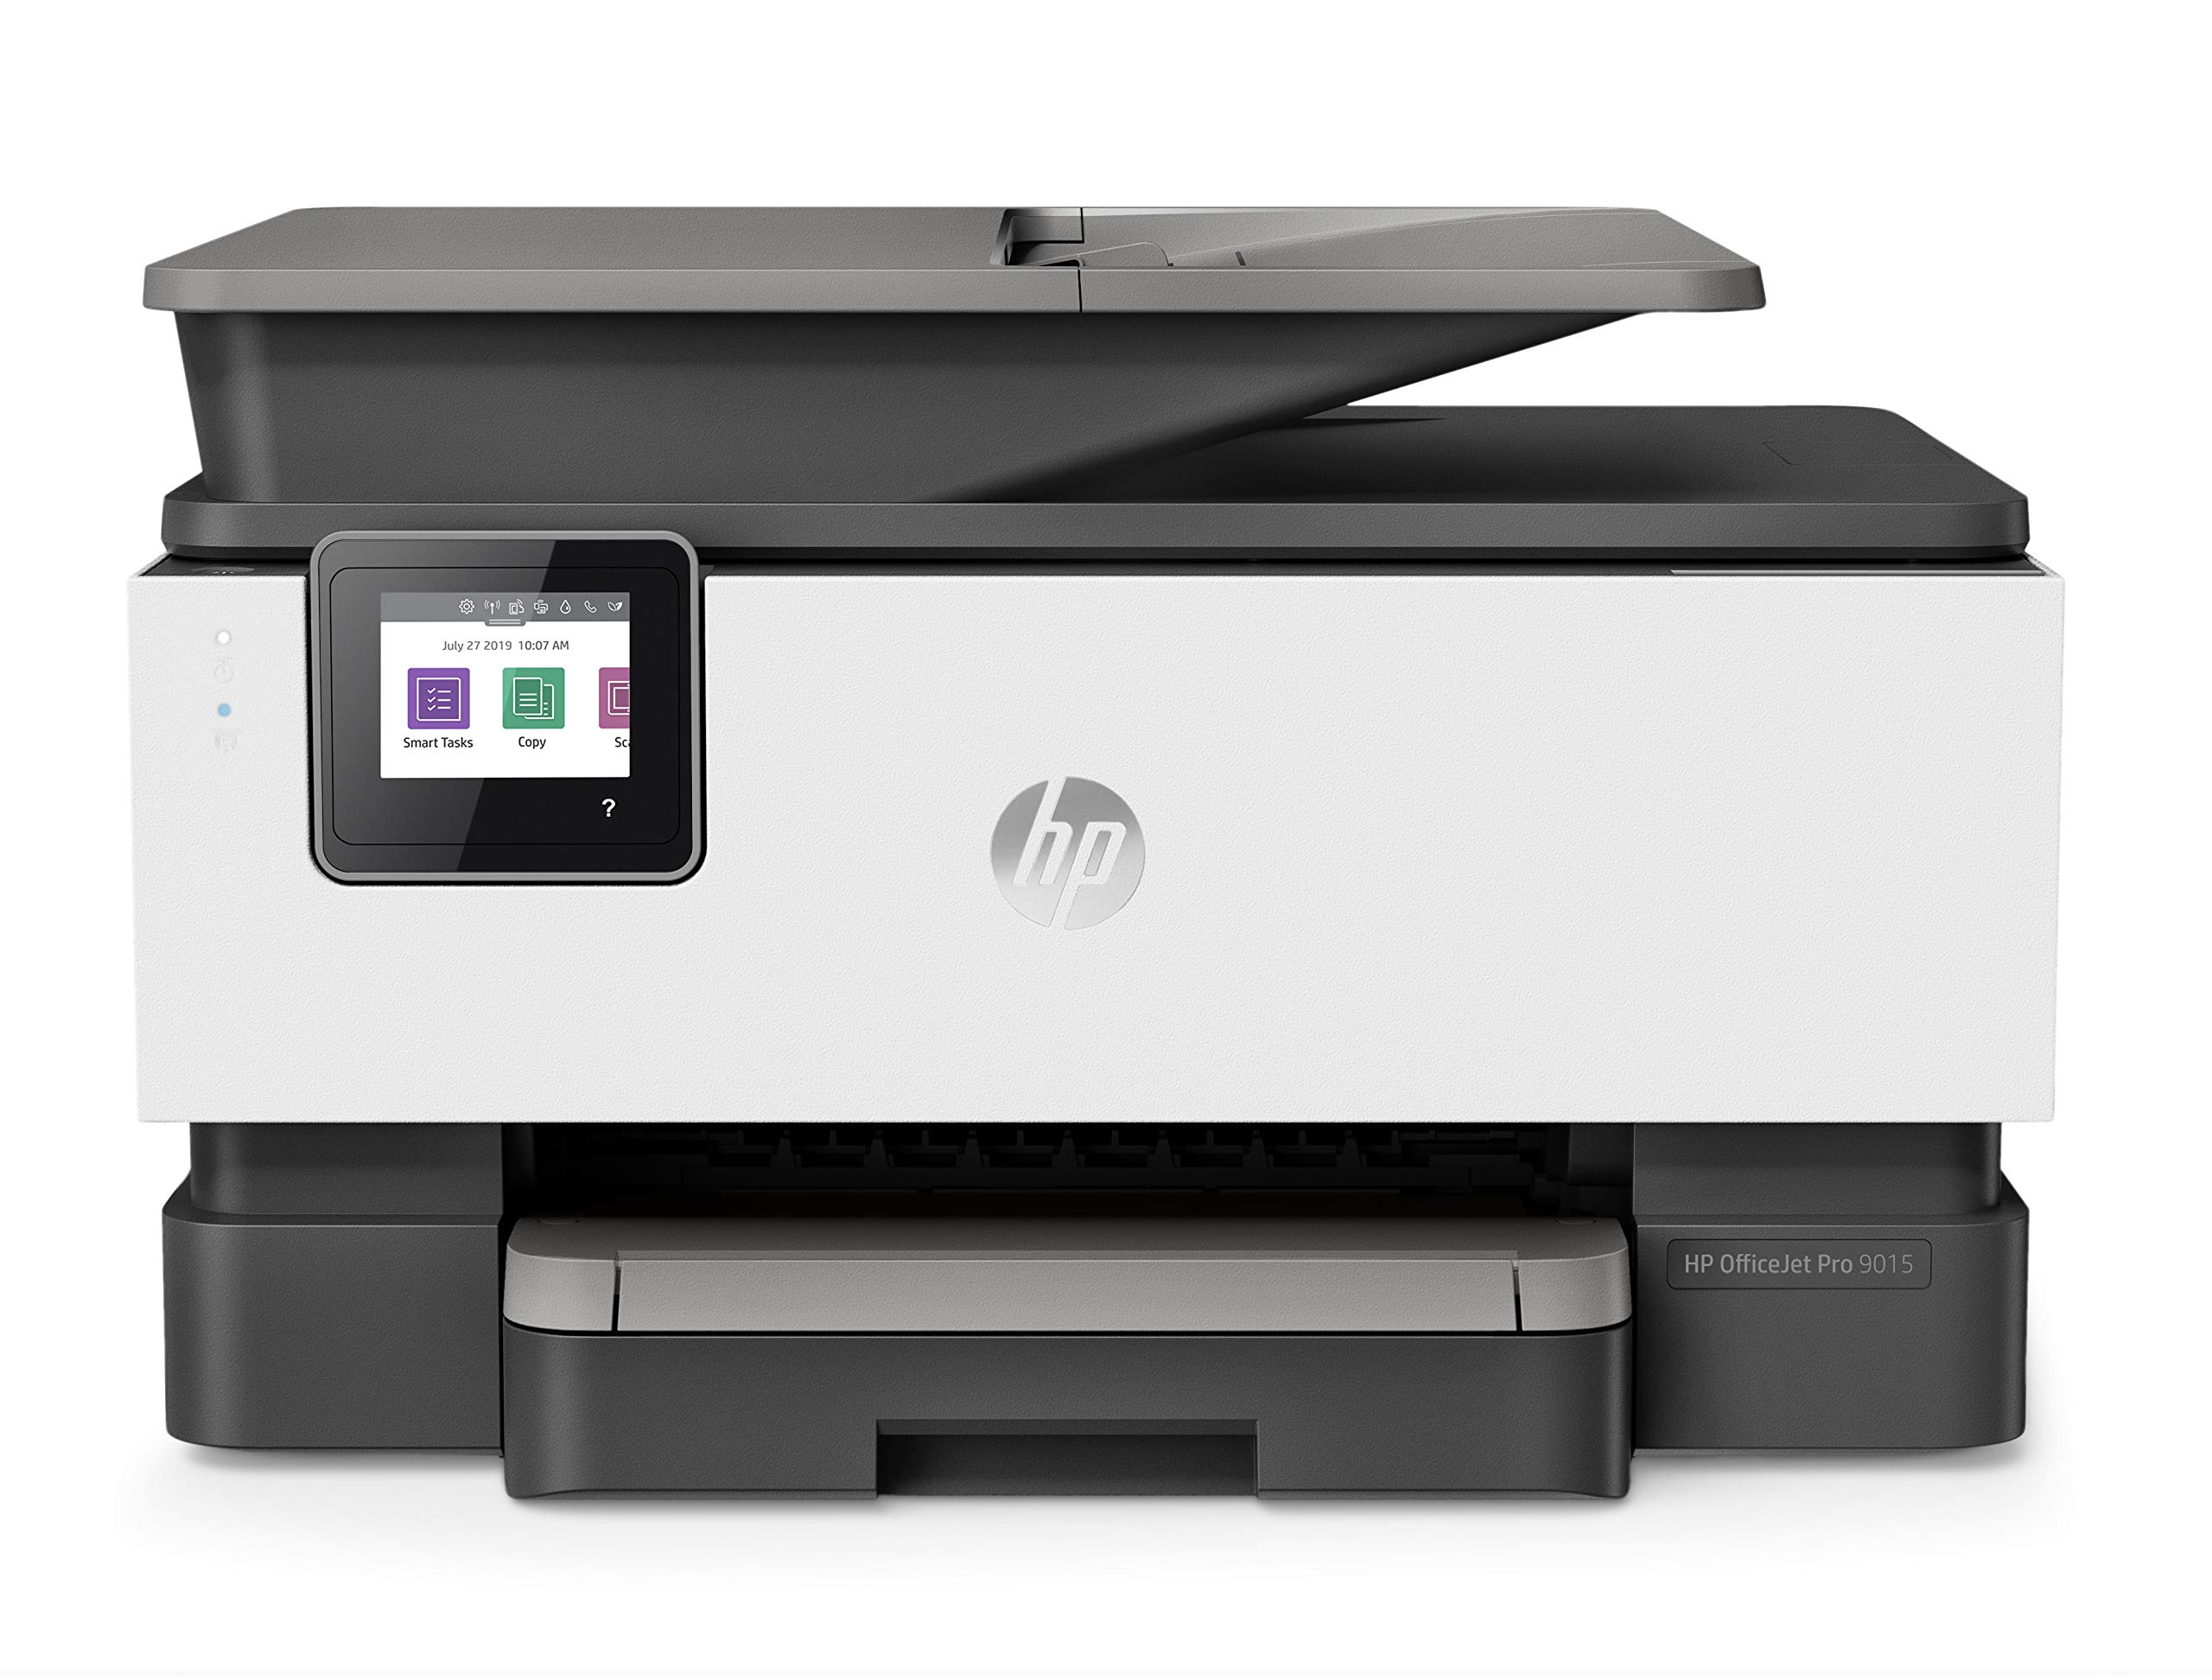 HP OfficeJet Pro 9015 All-in-One Wireless Printer, with Smart Tasks for Smart Office Productivity & Never Run Out of Ink with HP Instant Ink (1KR42A) by HP